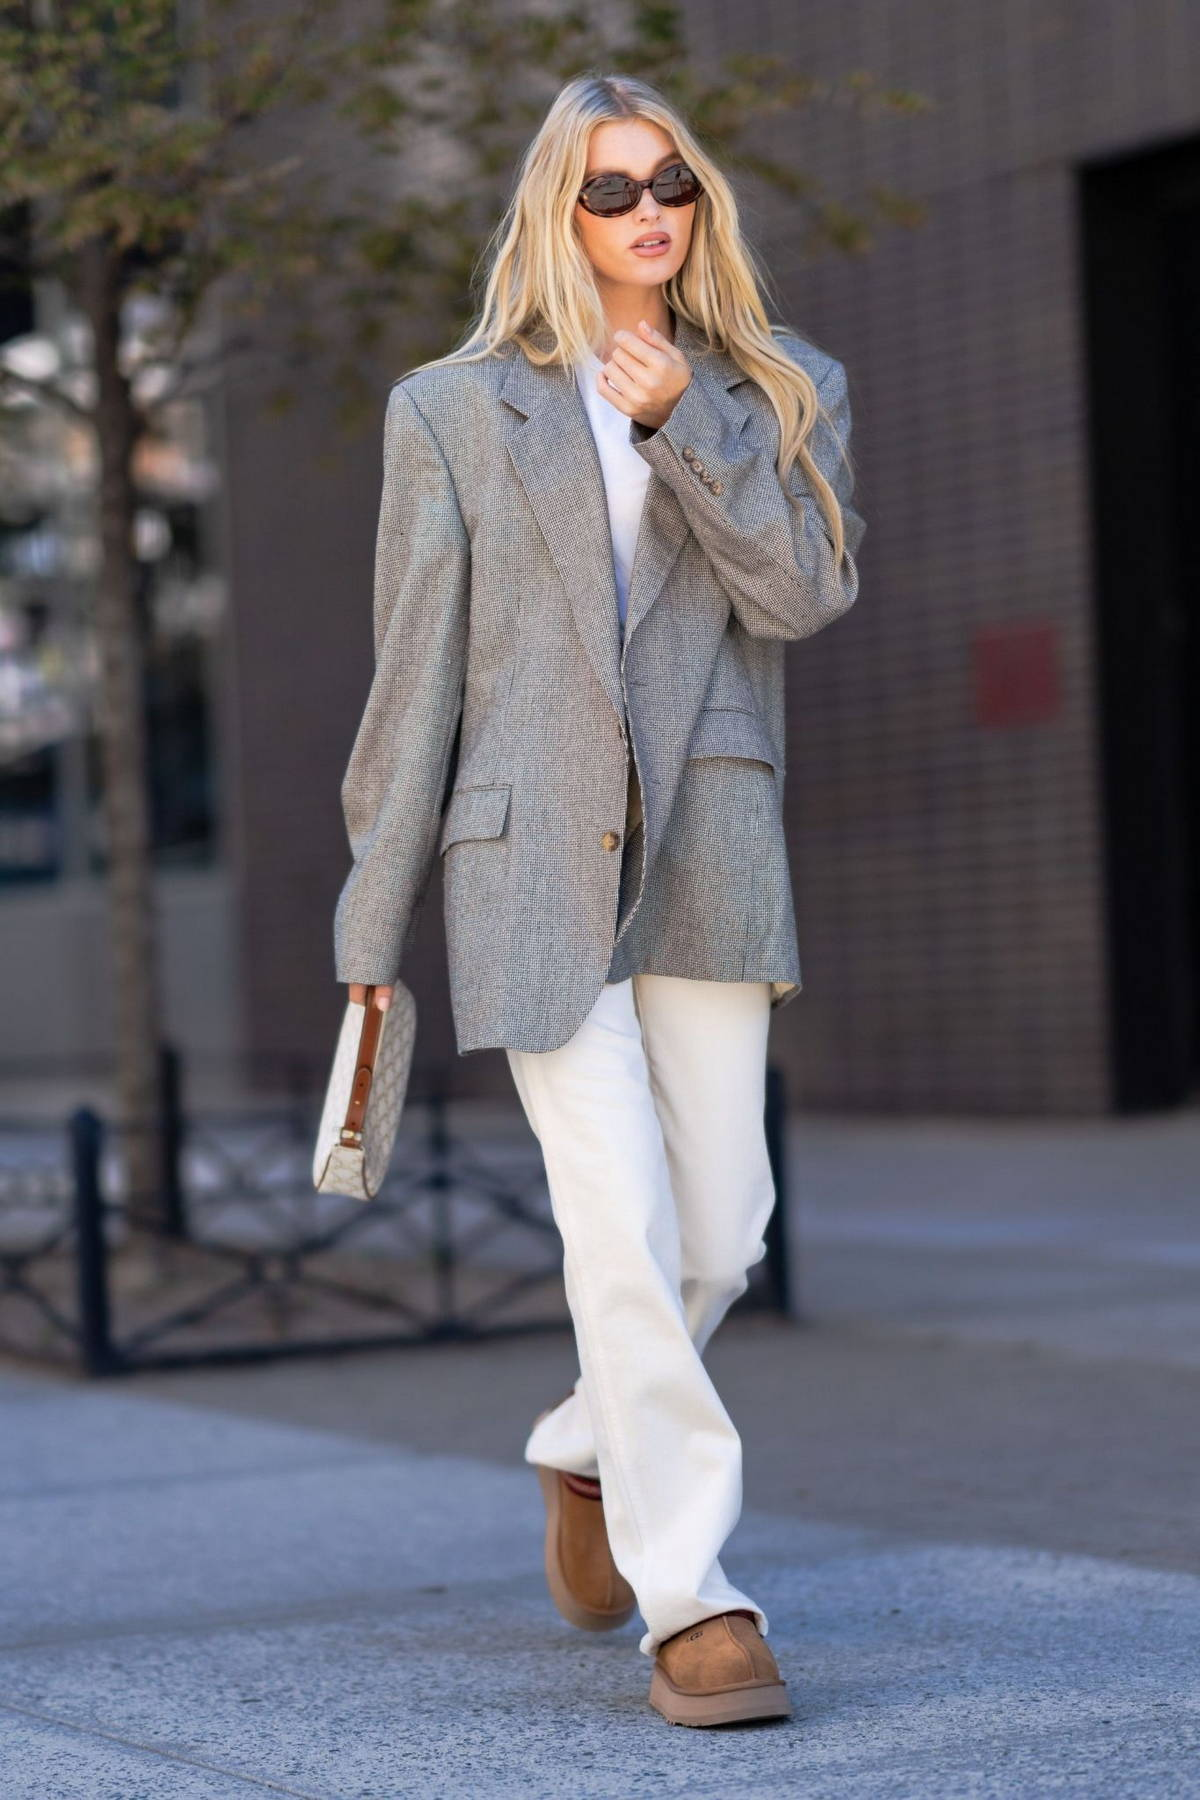 Elsa Hosk keeps it casual yet chic with a grey blazer, white top and cream trousers while out in SoHo, New York City